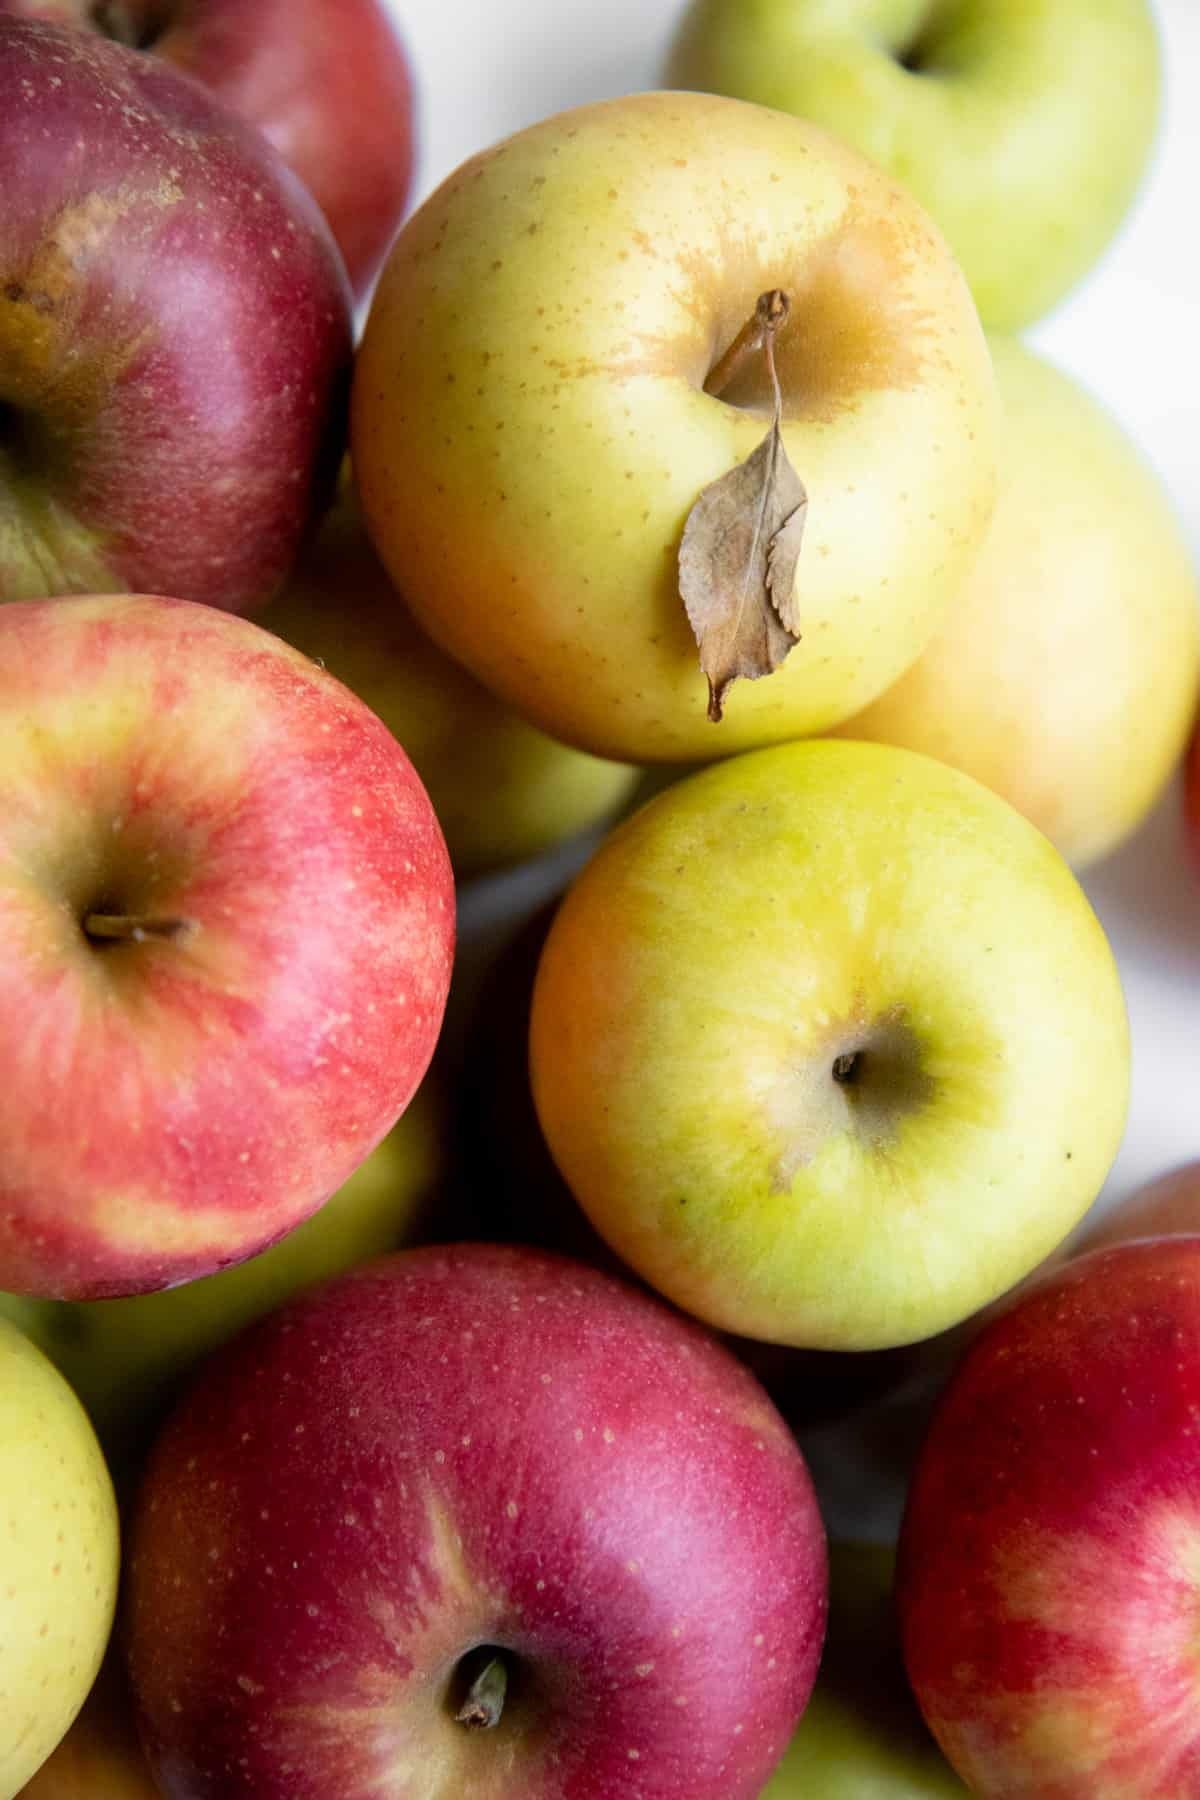 Close-up on a stack of yellow, green, and red apples.